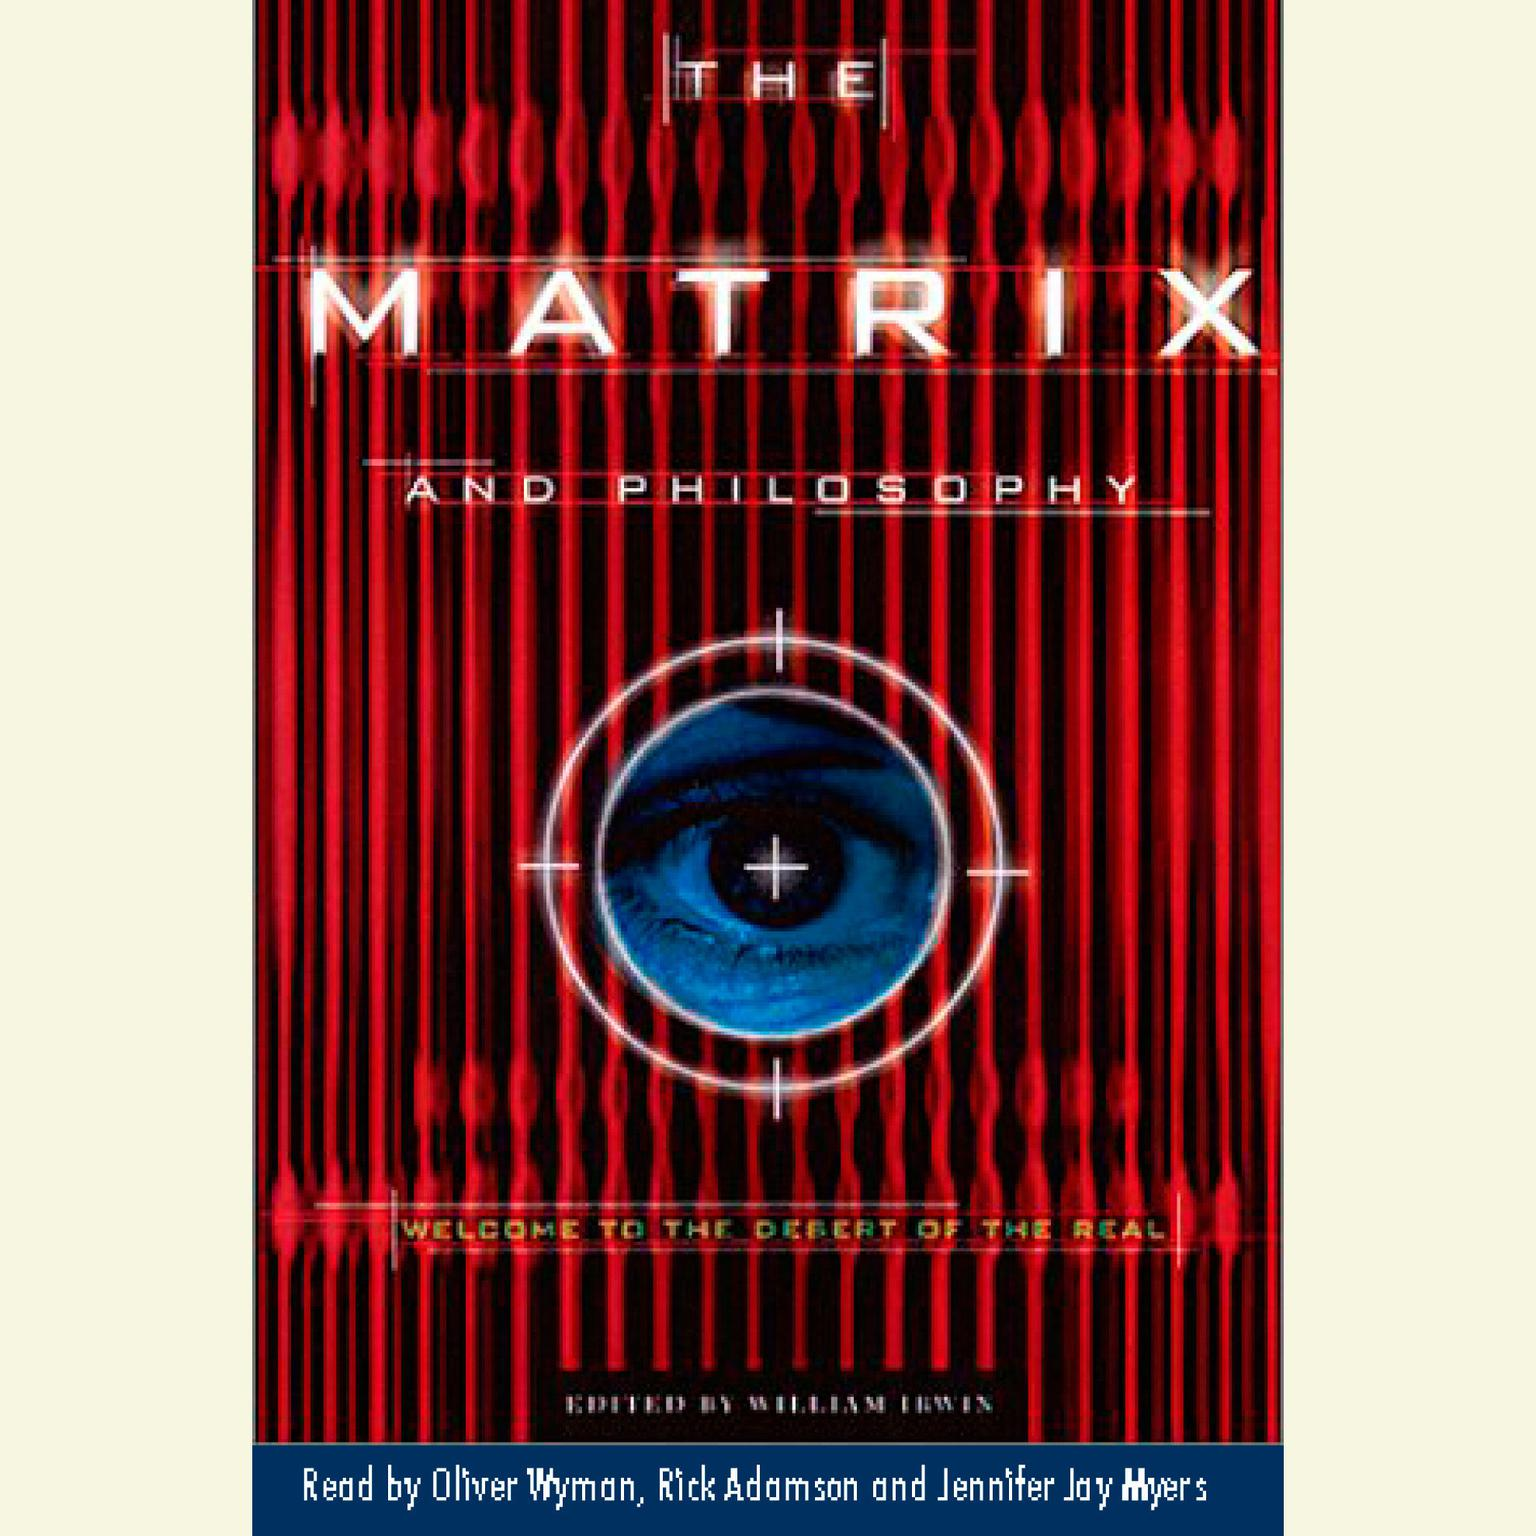 Printable The Matrix and Philosophy: Welcome to the Desert for Real Audiobook Cover Art